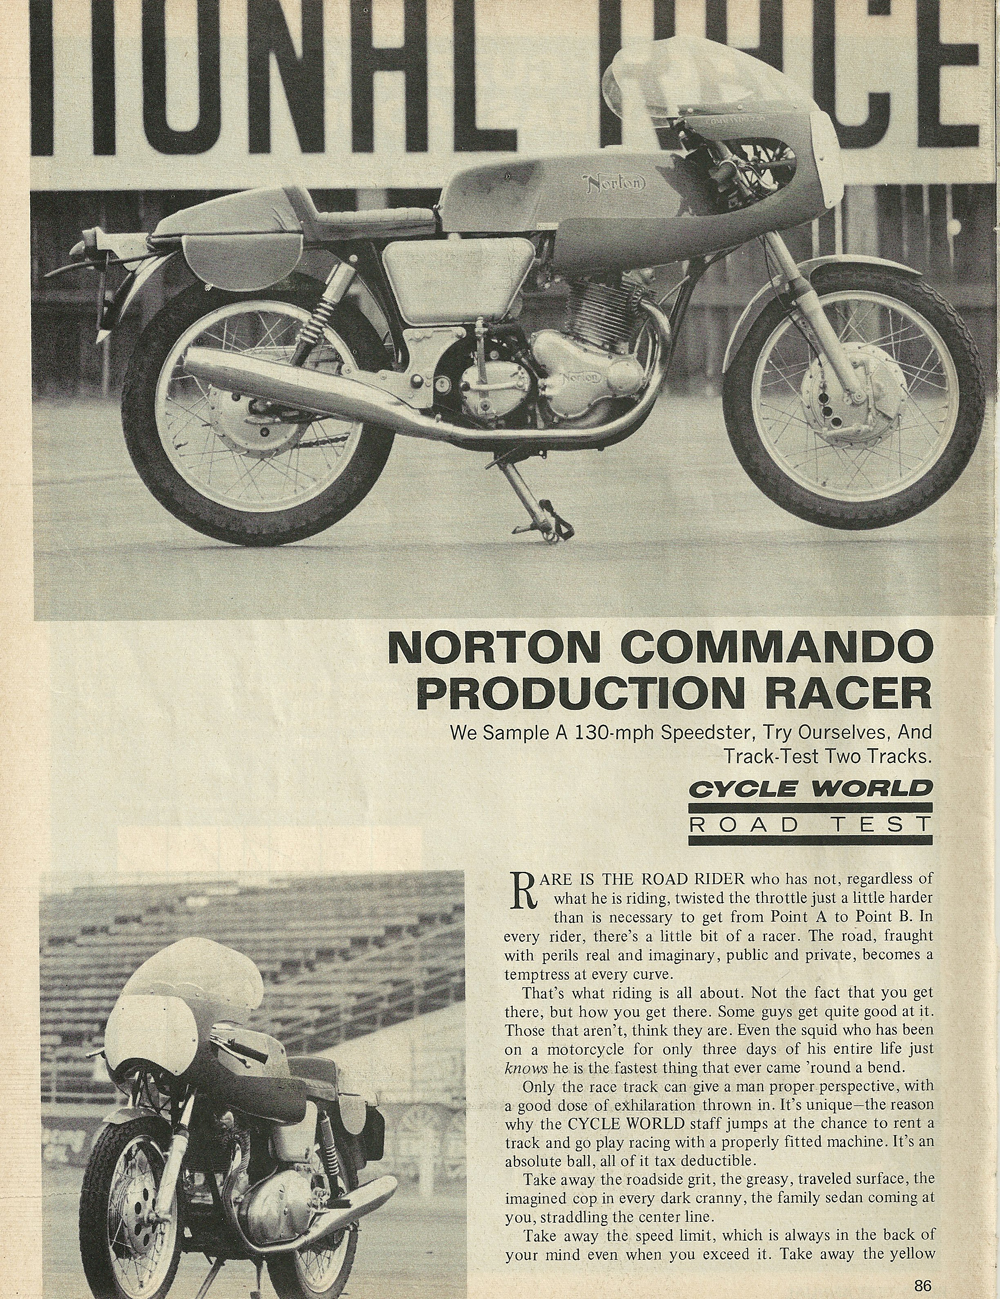 1969 Norton Commando Production Racer road test 1.jpg